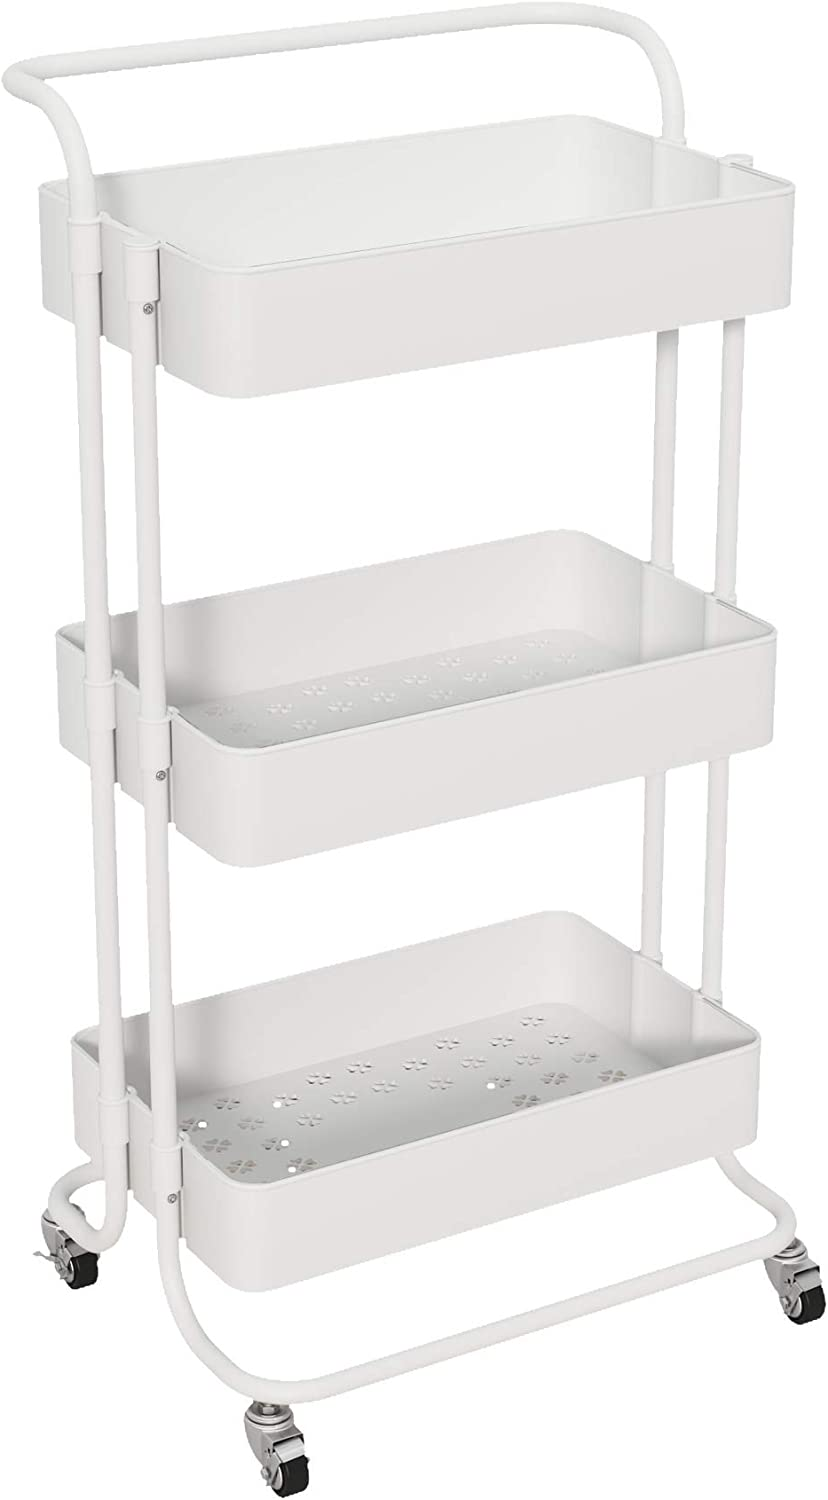 ACCSTORE 3-Layer Rolling Storage Utility Cart, Storage Cart with Handle, Mobile Storage Box, Multi-Purpose, with Locking Wheels, Suitable for Kitchen, Living Room, Office,White